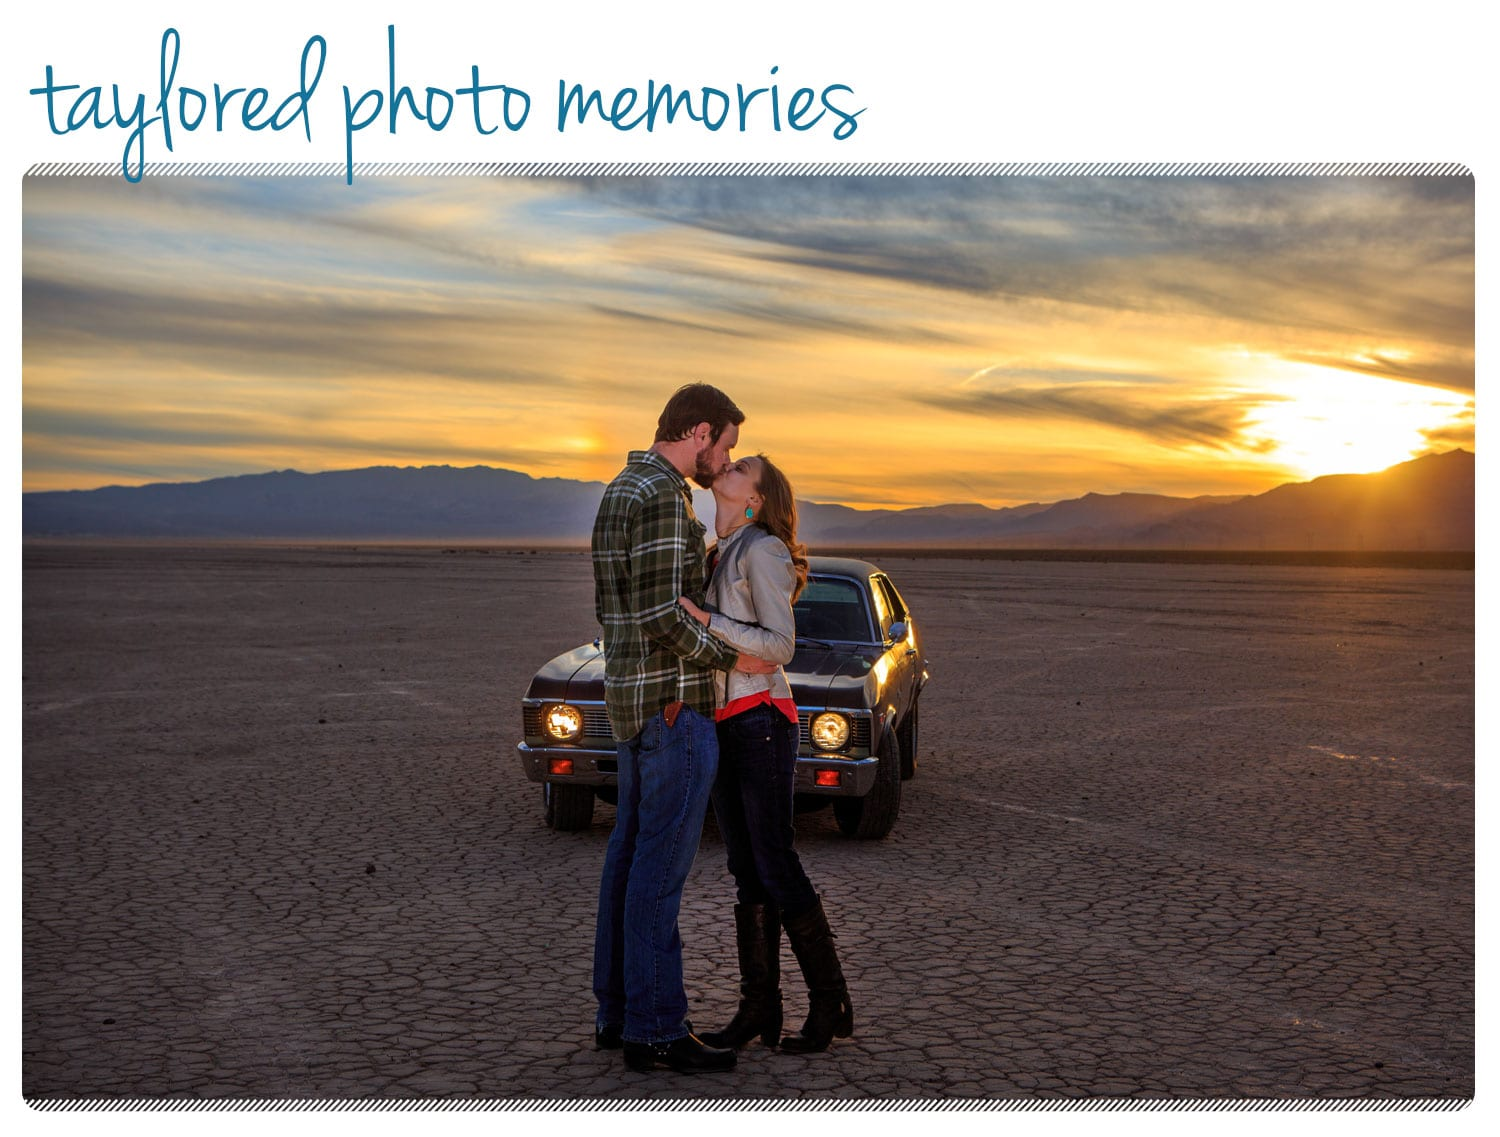 Sunset Photo Shoot at the Dry Lake Bed in Las Vegas NV || Vintage Car Photo Shoot